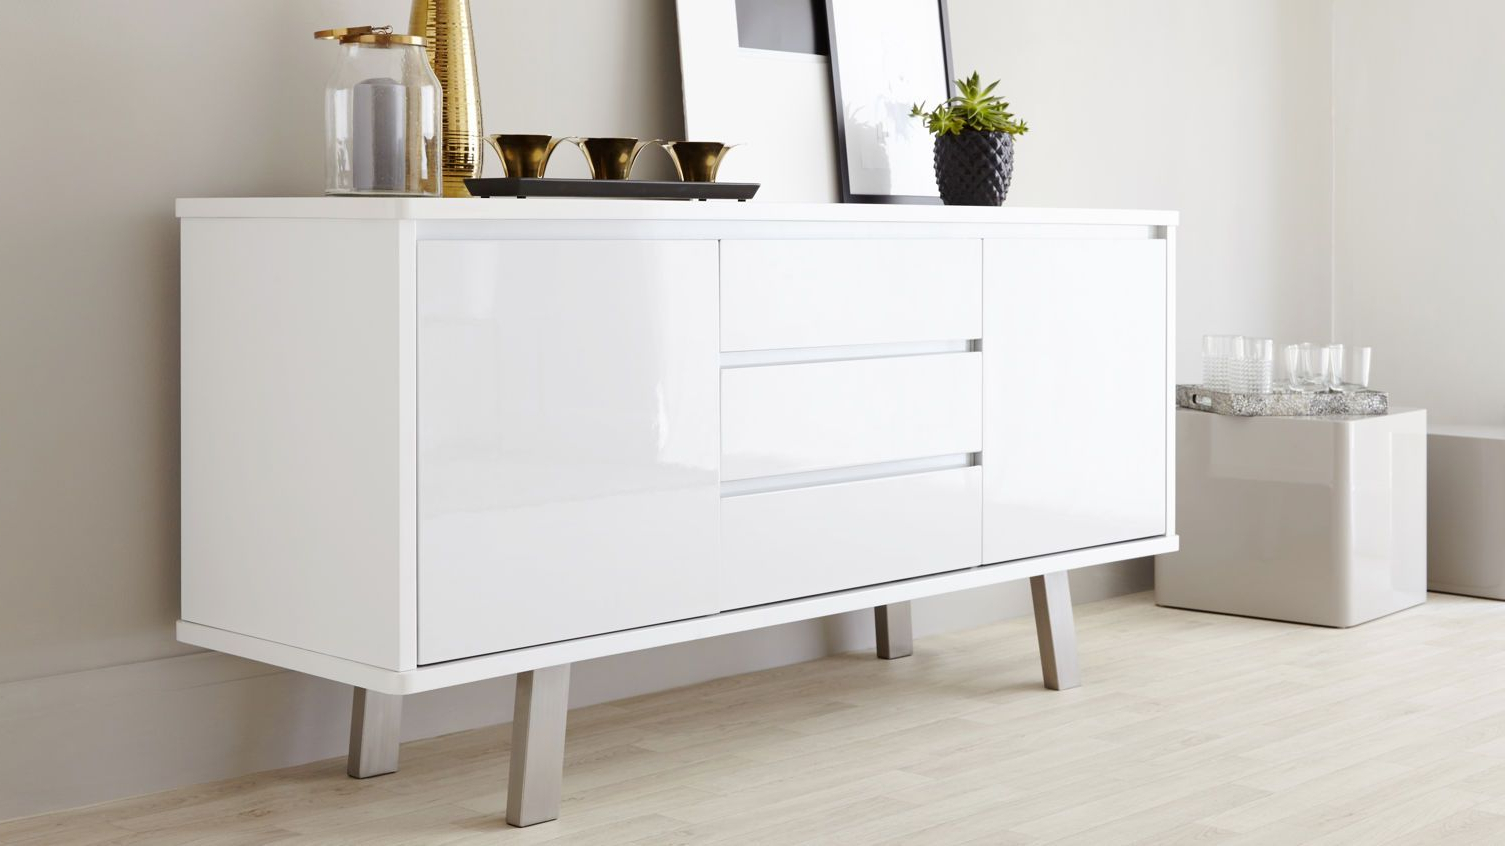 Assi White Gloss Sideboard | Danetti | Stylish Sideboards In With Regard To White Wood And Chrome Metal High Gloss Buffets (View 3 of 20)